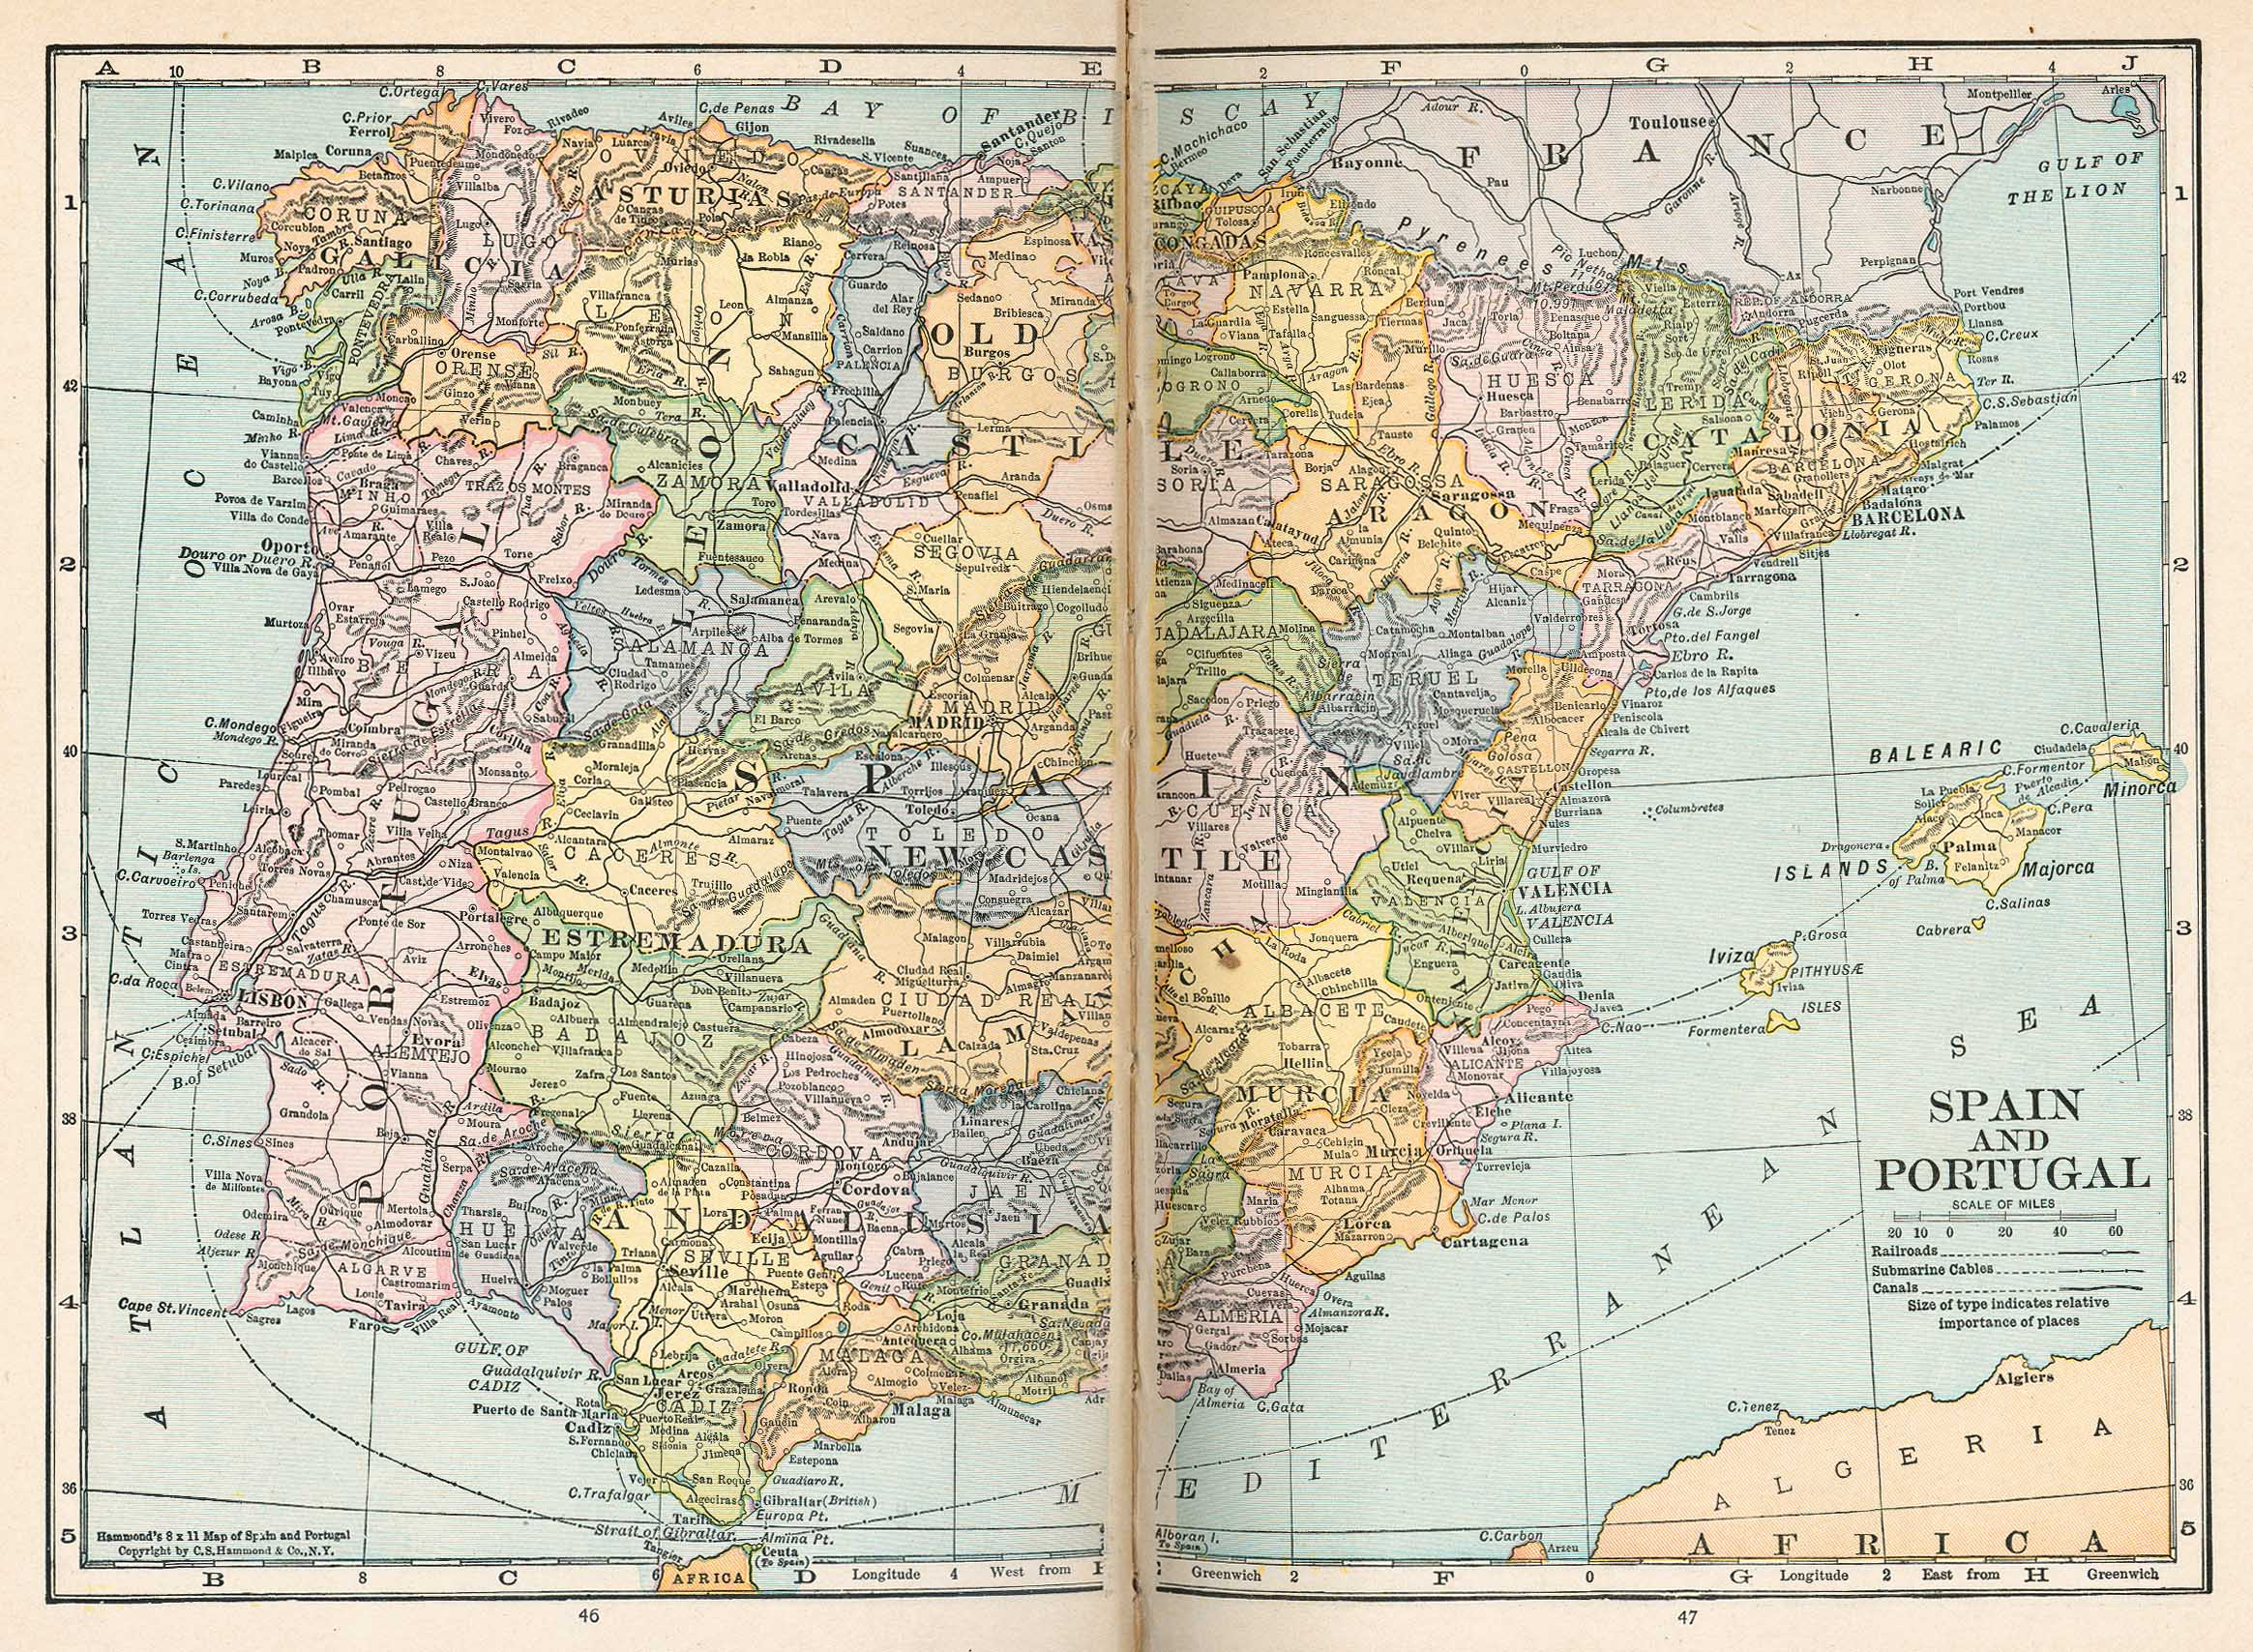 Spain and Portugal Map 1921